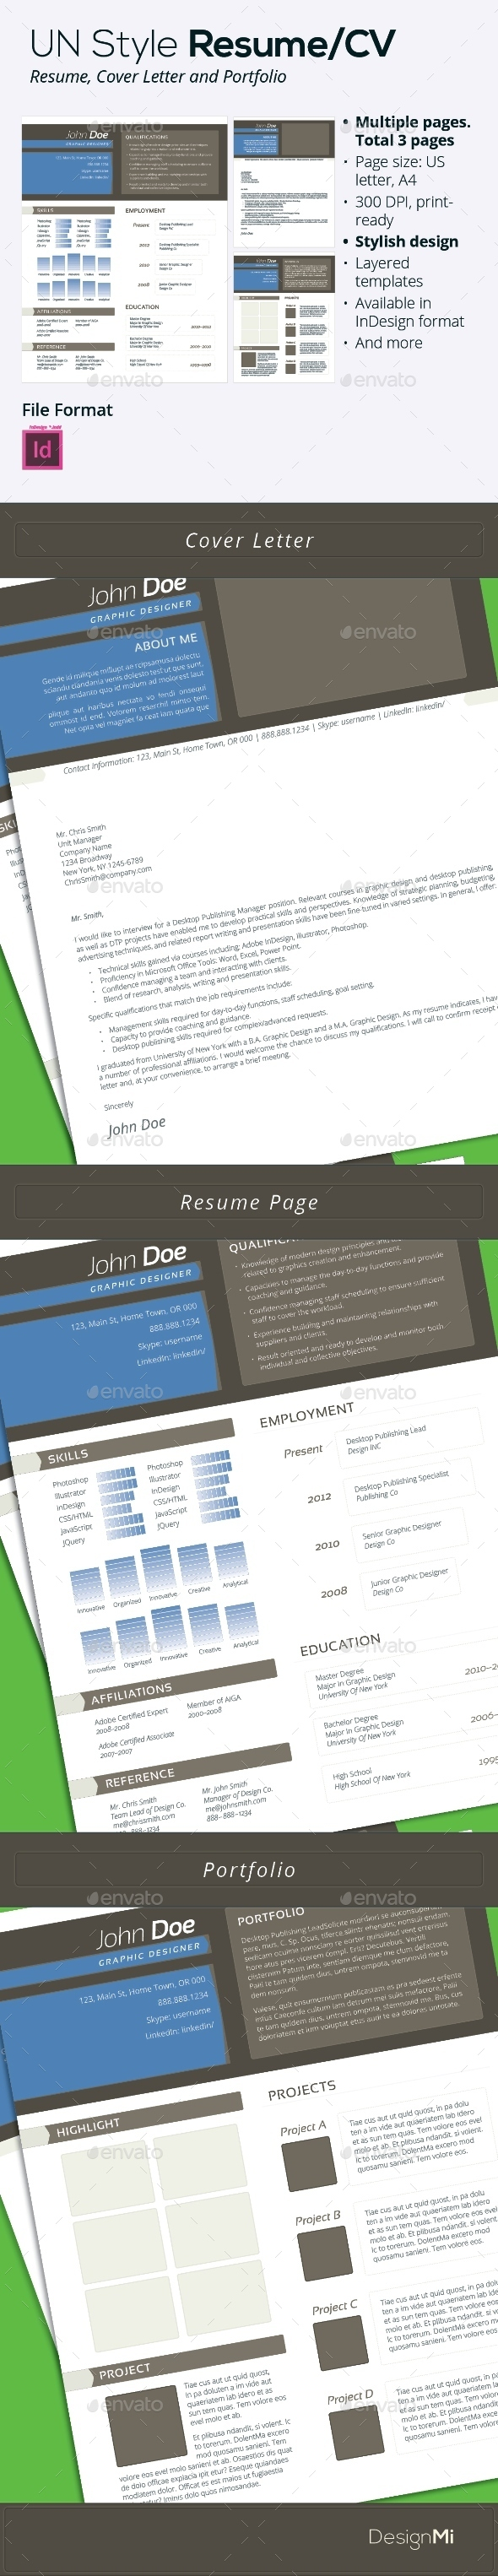 GraphicRiver UN Style Resume CV 3 pages 9342585